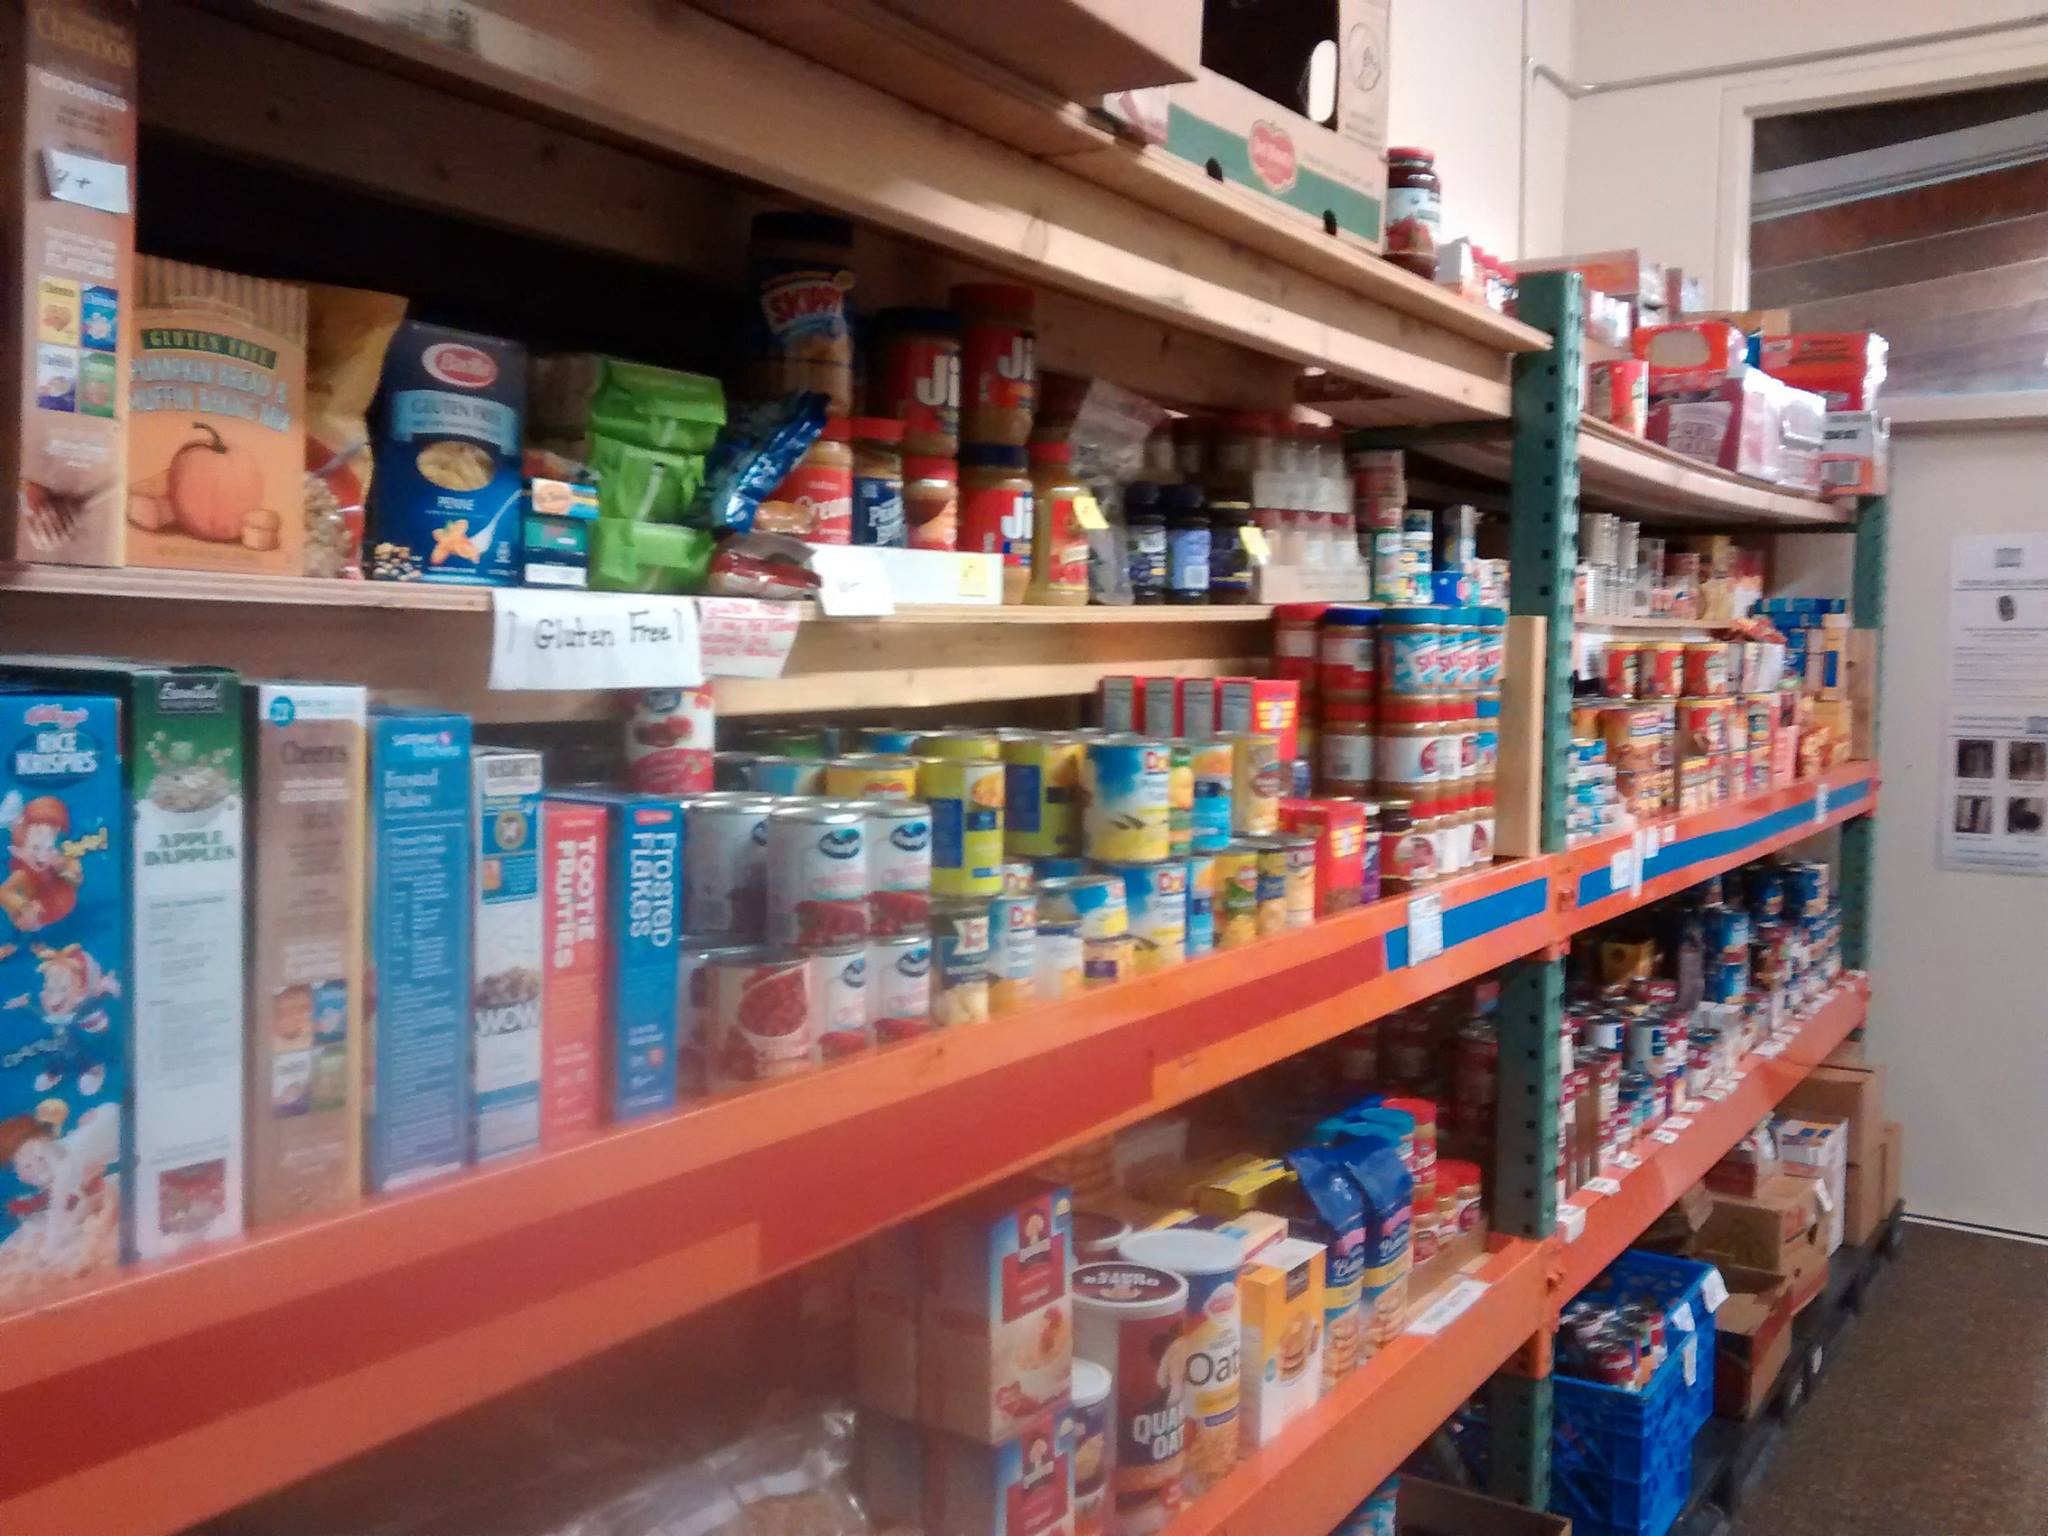 canned goods line shelf to gain food bank support.